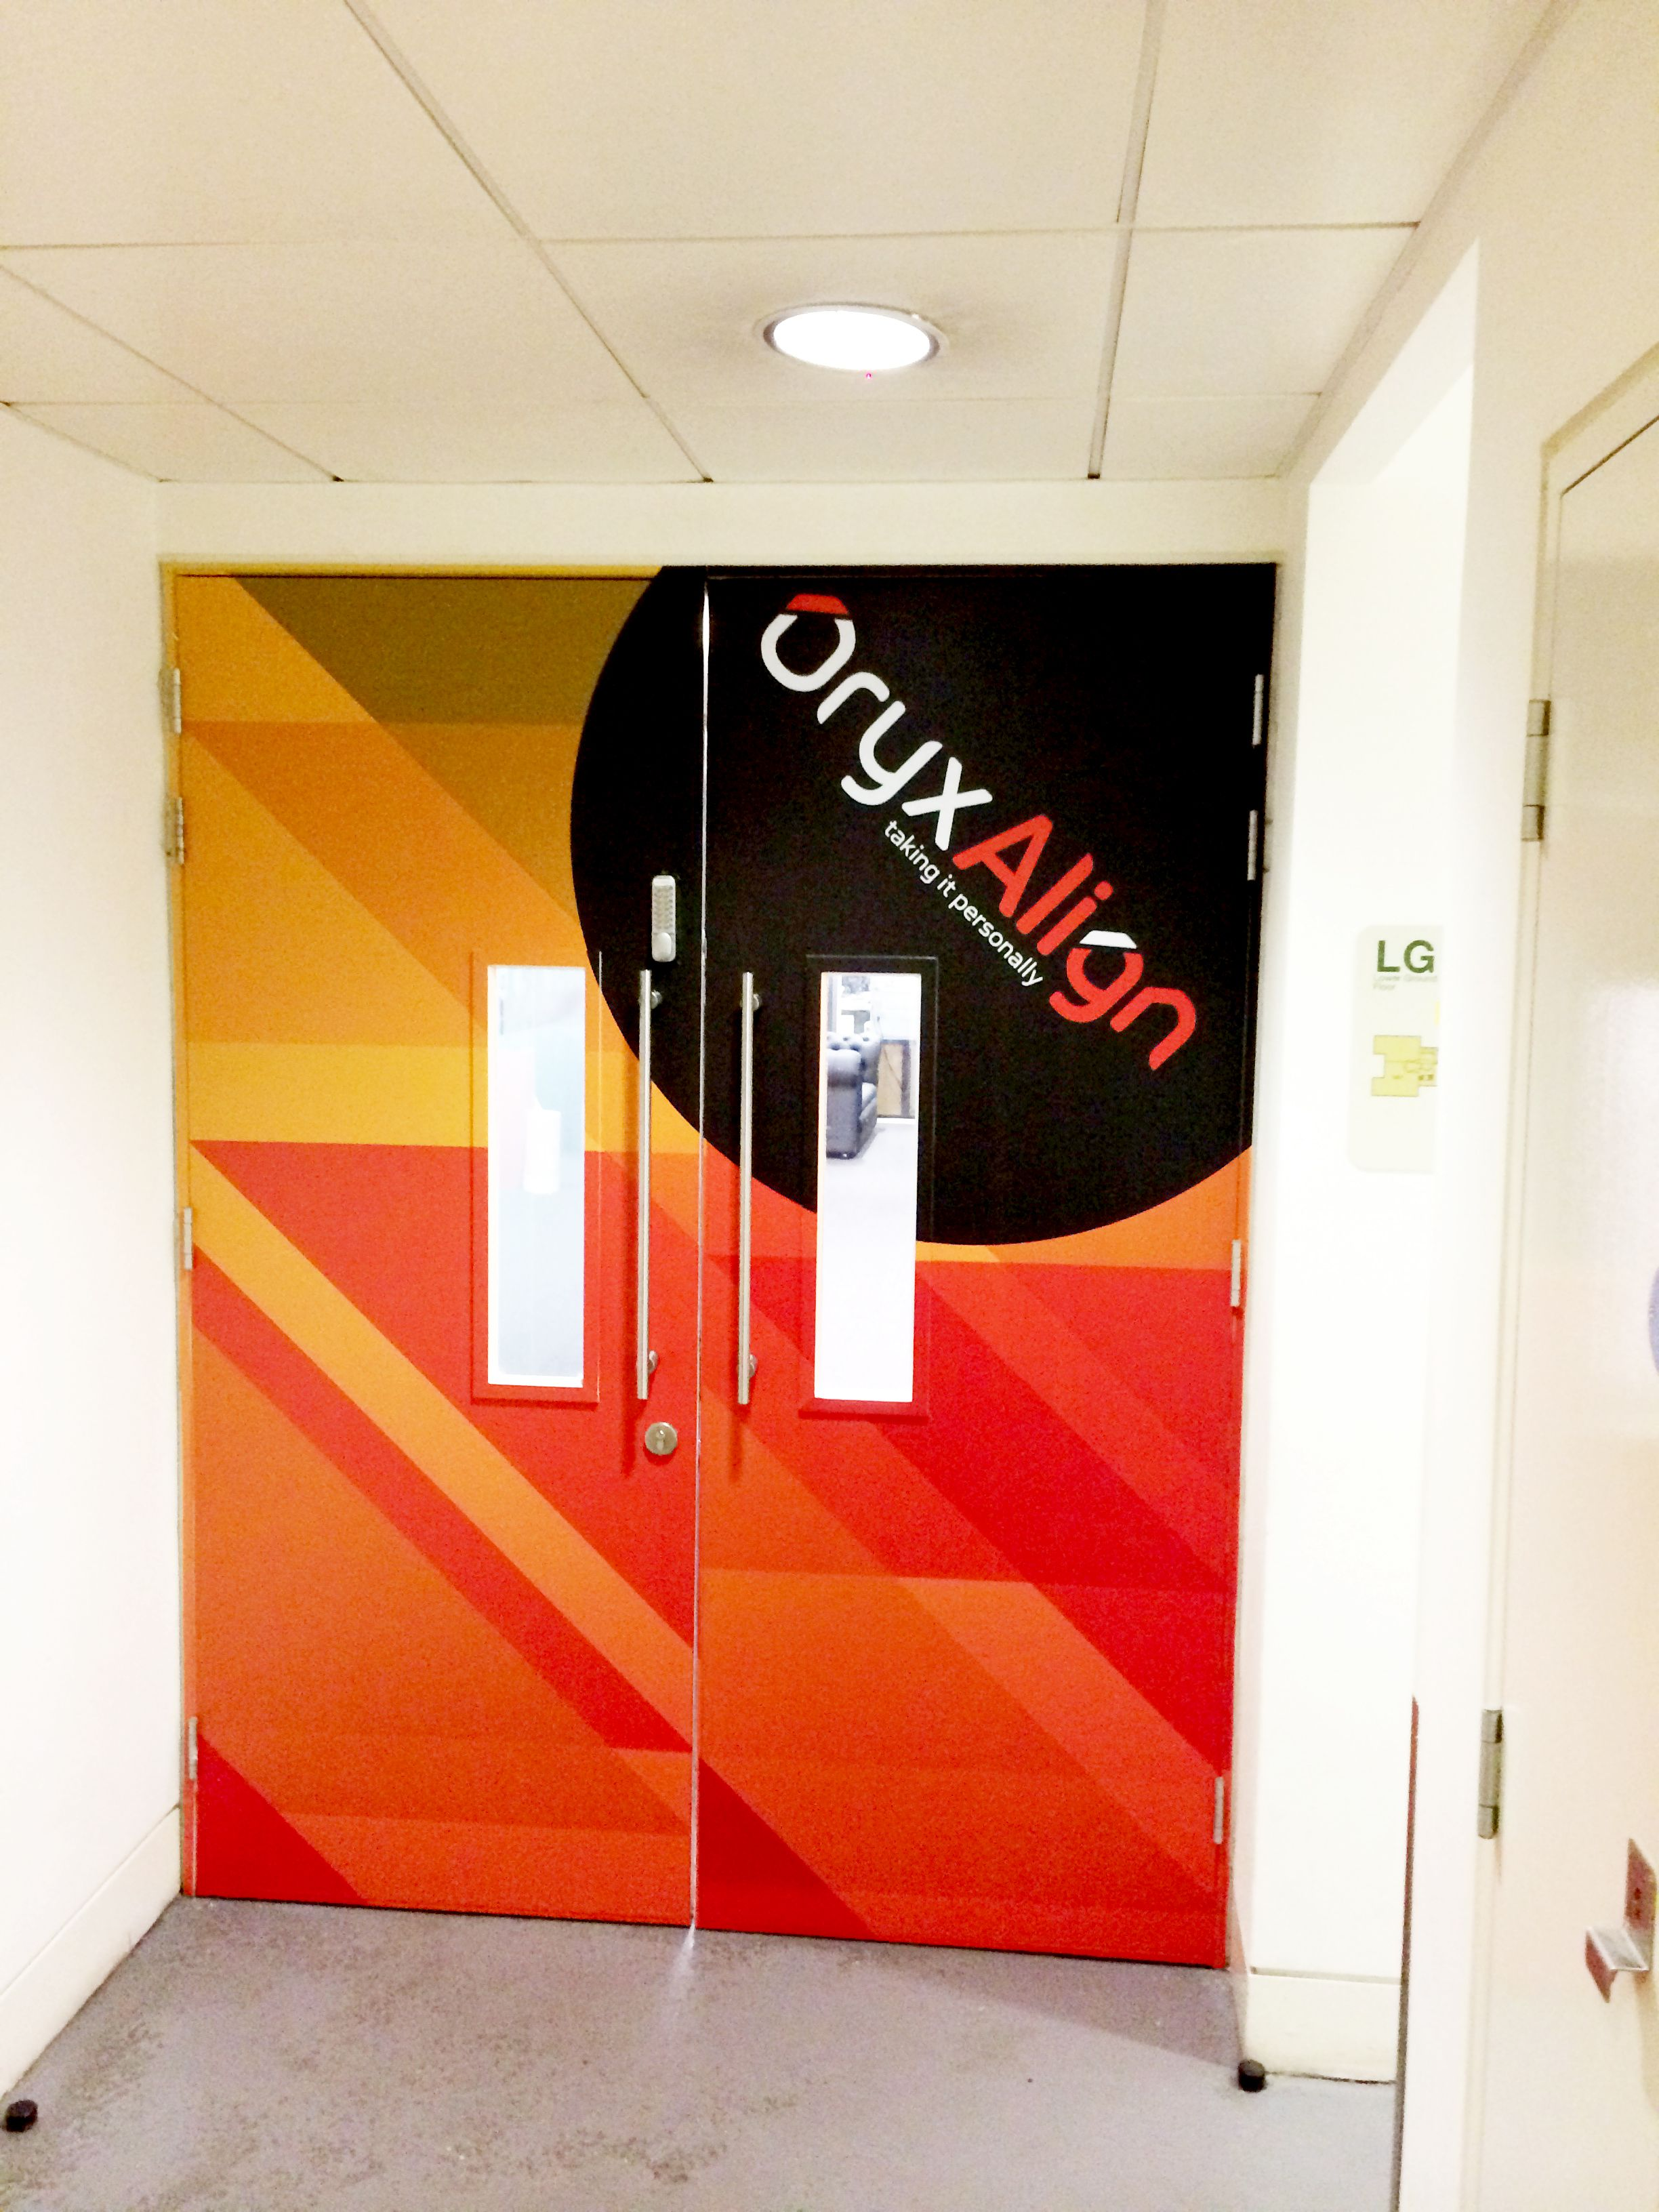 Image Result For Hotel Room Door Designs: Image Result For Wrap Company Office